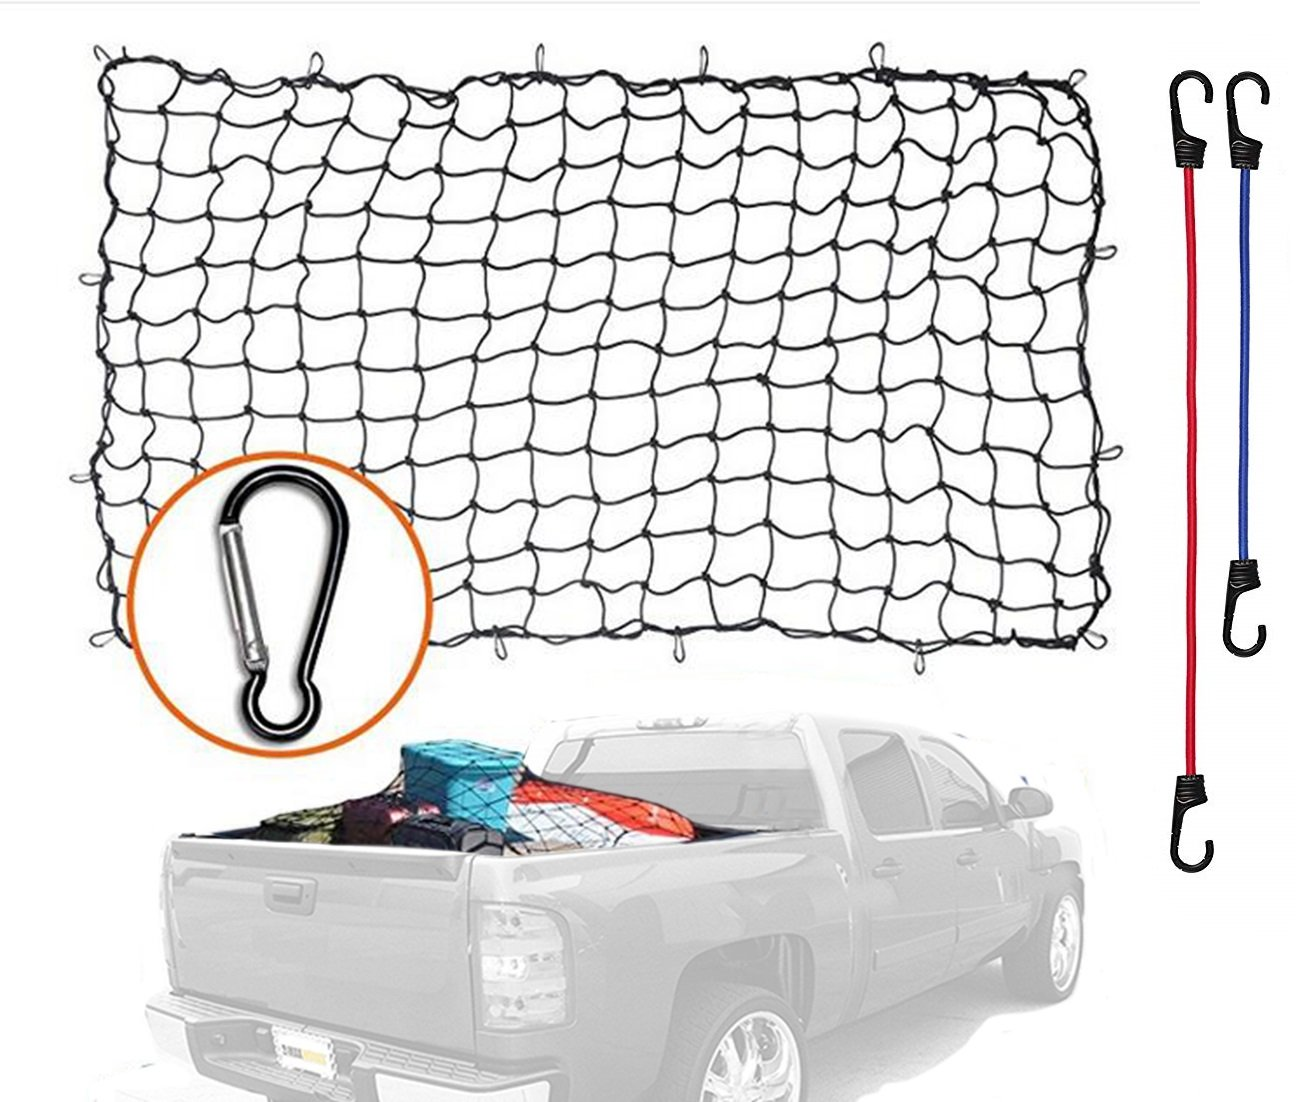 4'x6' Super Duty Bungee Cargo Net Stretches to 8'x12' | 12 Tangle-Free D Clip Carabiners | 2 Premium Plastic Coated Metal Hooks for 18 and 24 Inches| for Rooftop Cargo Carrier, ATV, UTV, Cargo Hitc AYAOQIANG